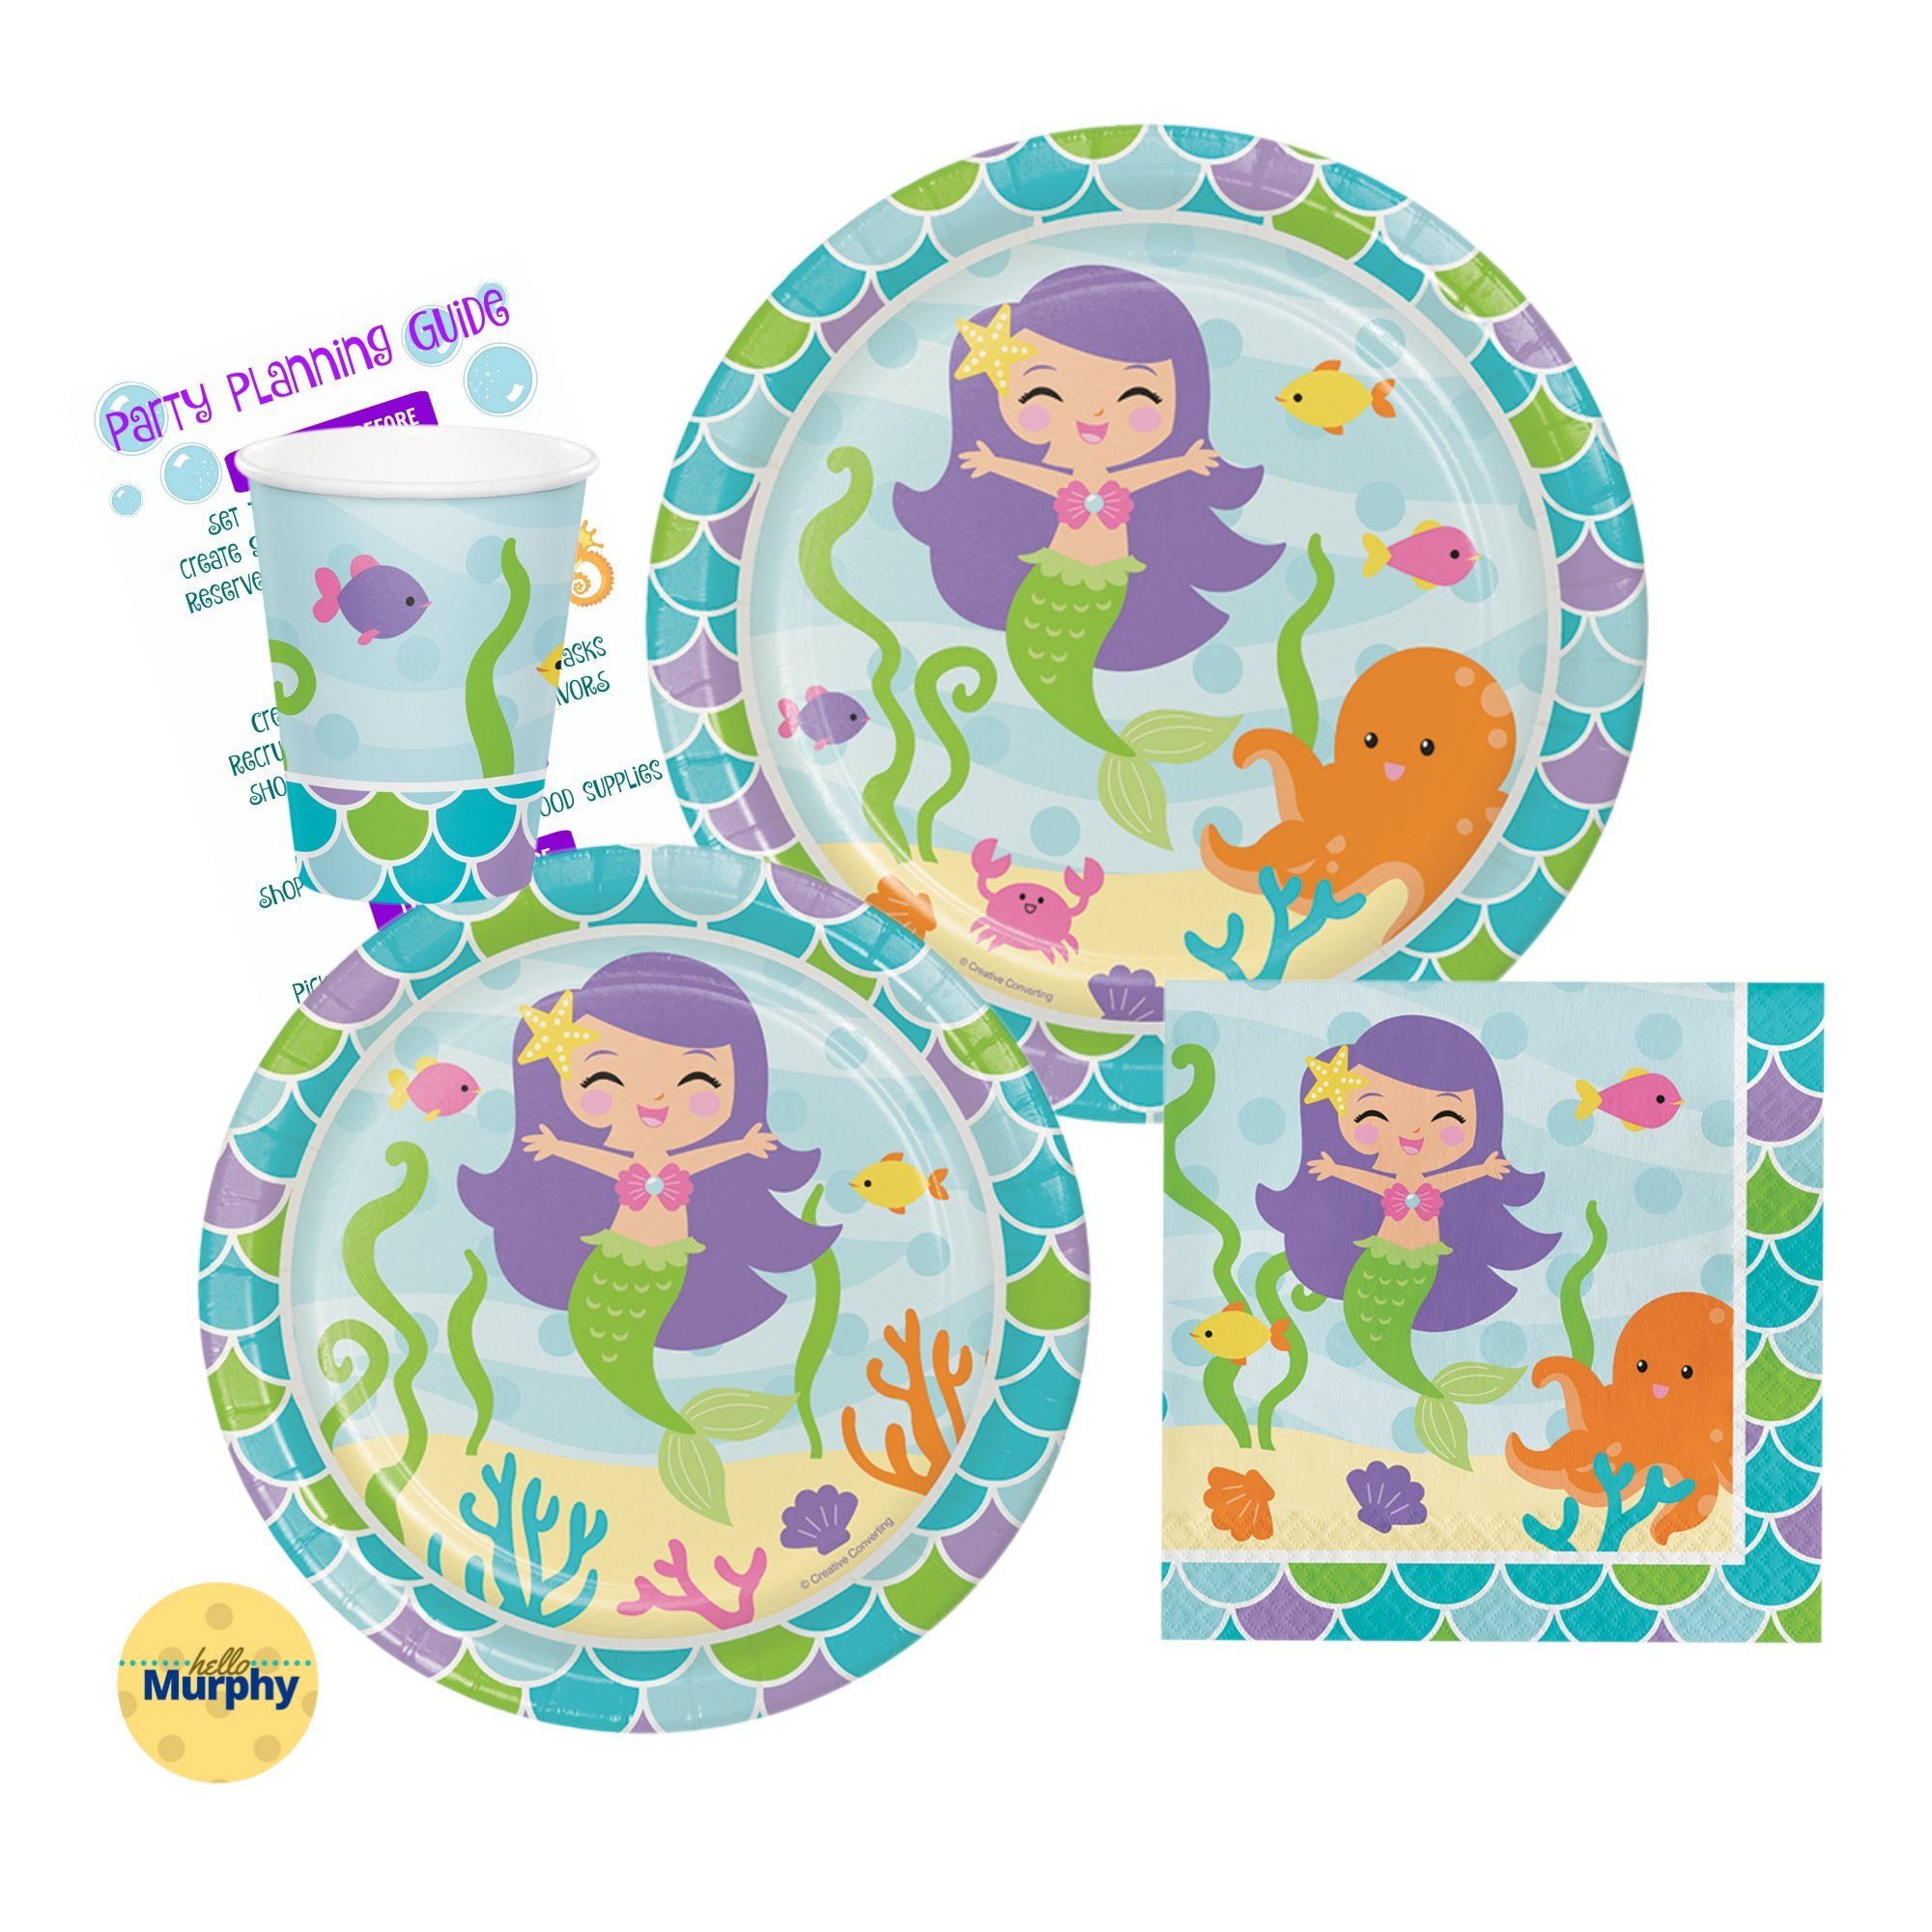 Mermaid Party Pack for 16 - Plates, Cups, and Napkins | Mermaid Party Supply Tableware Set Kit Includes Party Planning Guide